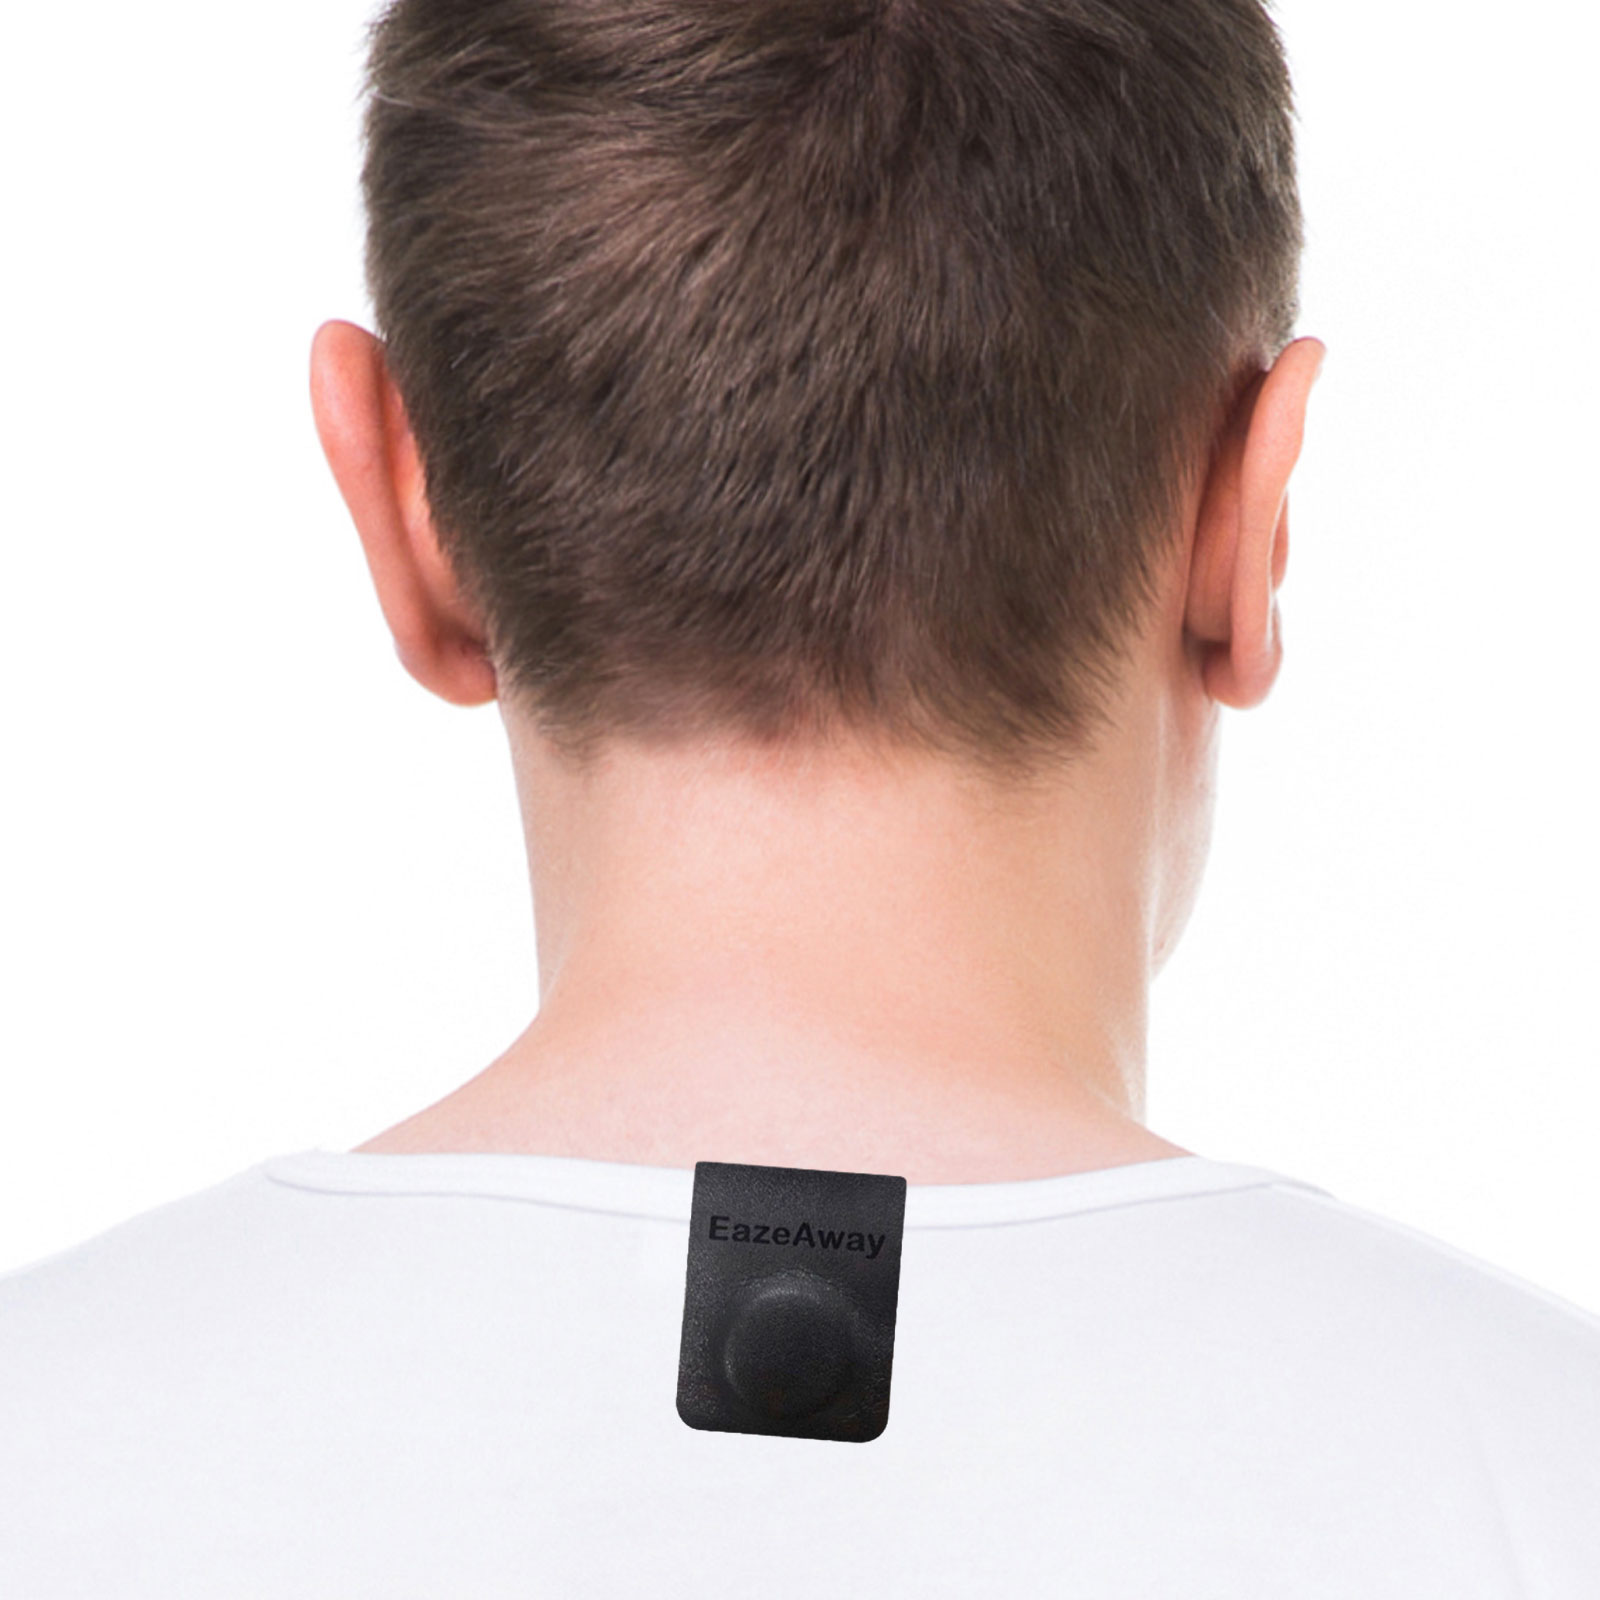 EazeAway Magnetic Clip attached to shirt for neck and shoulder pain relief